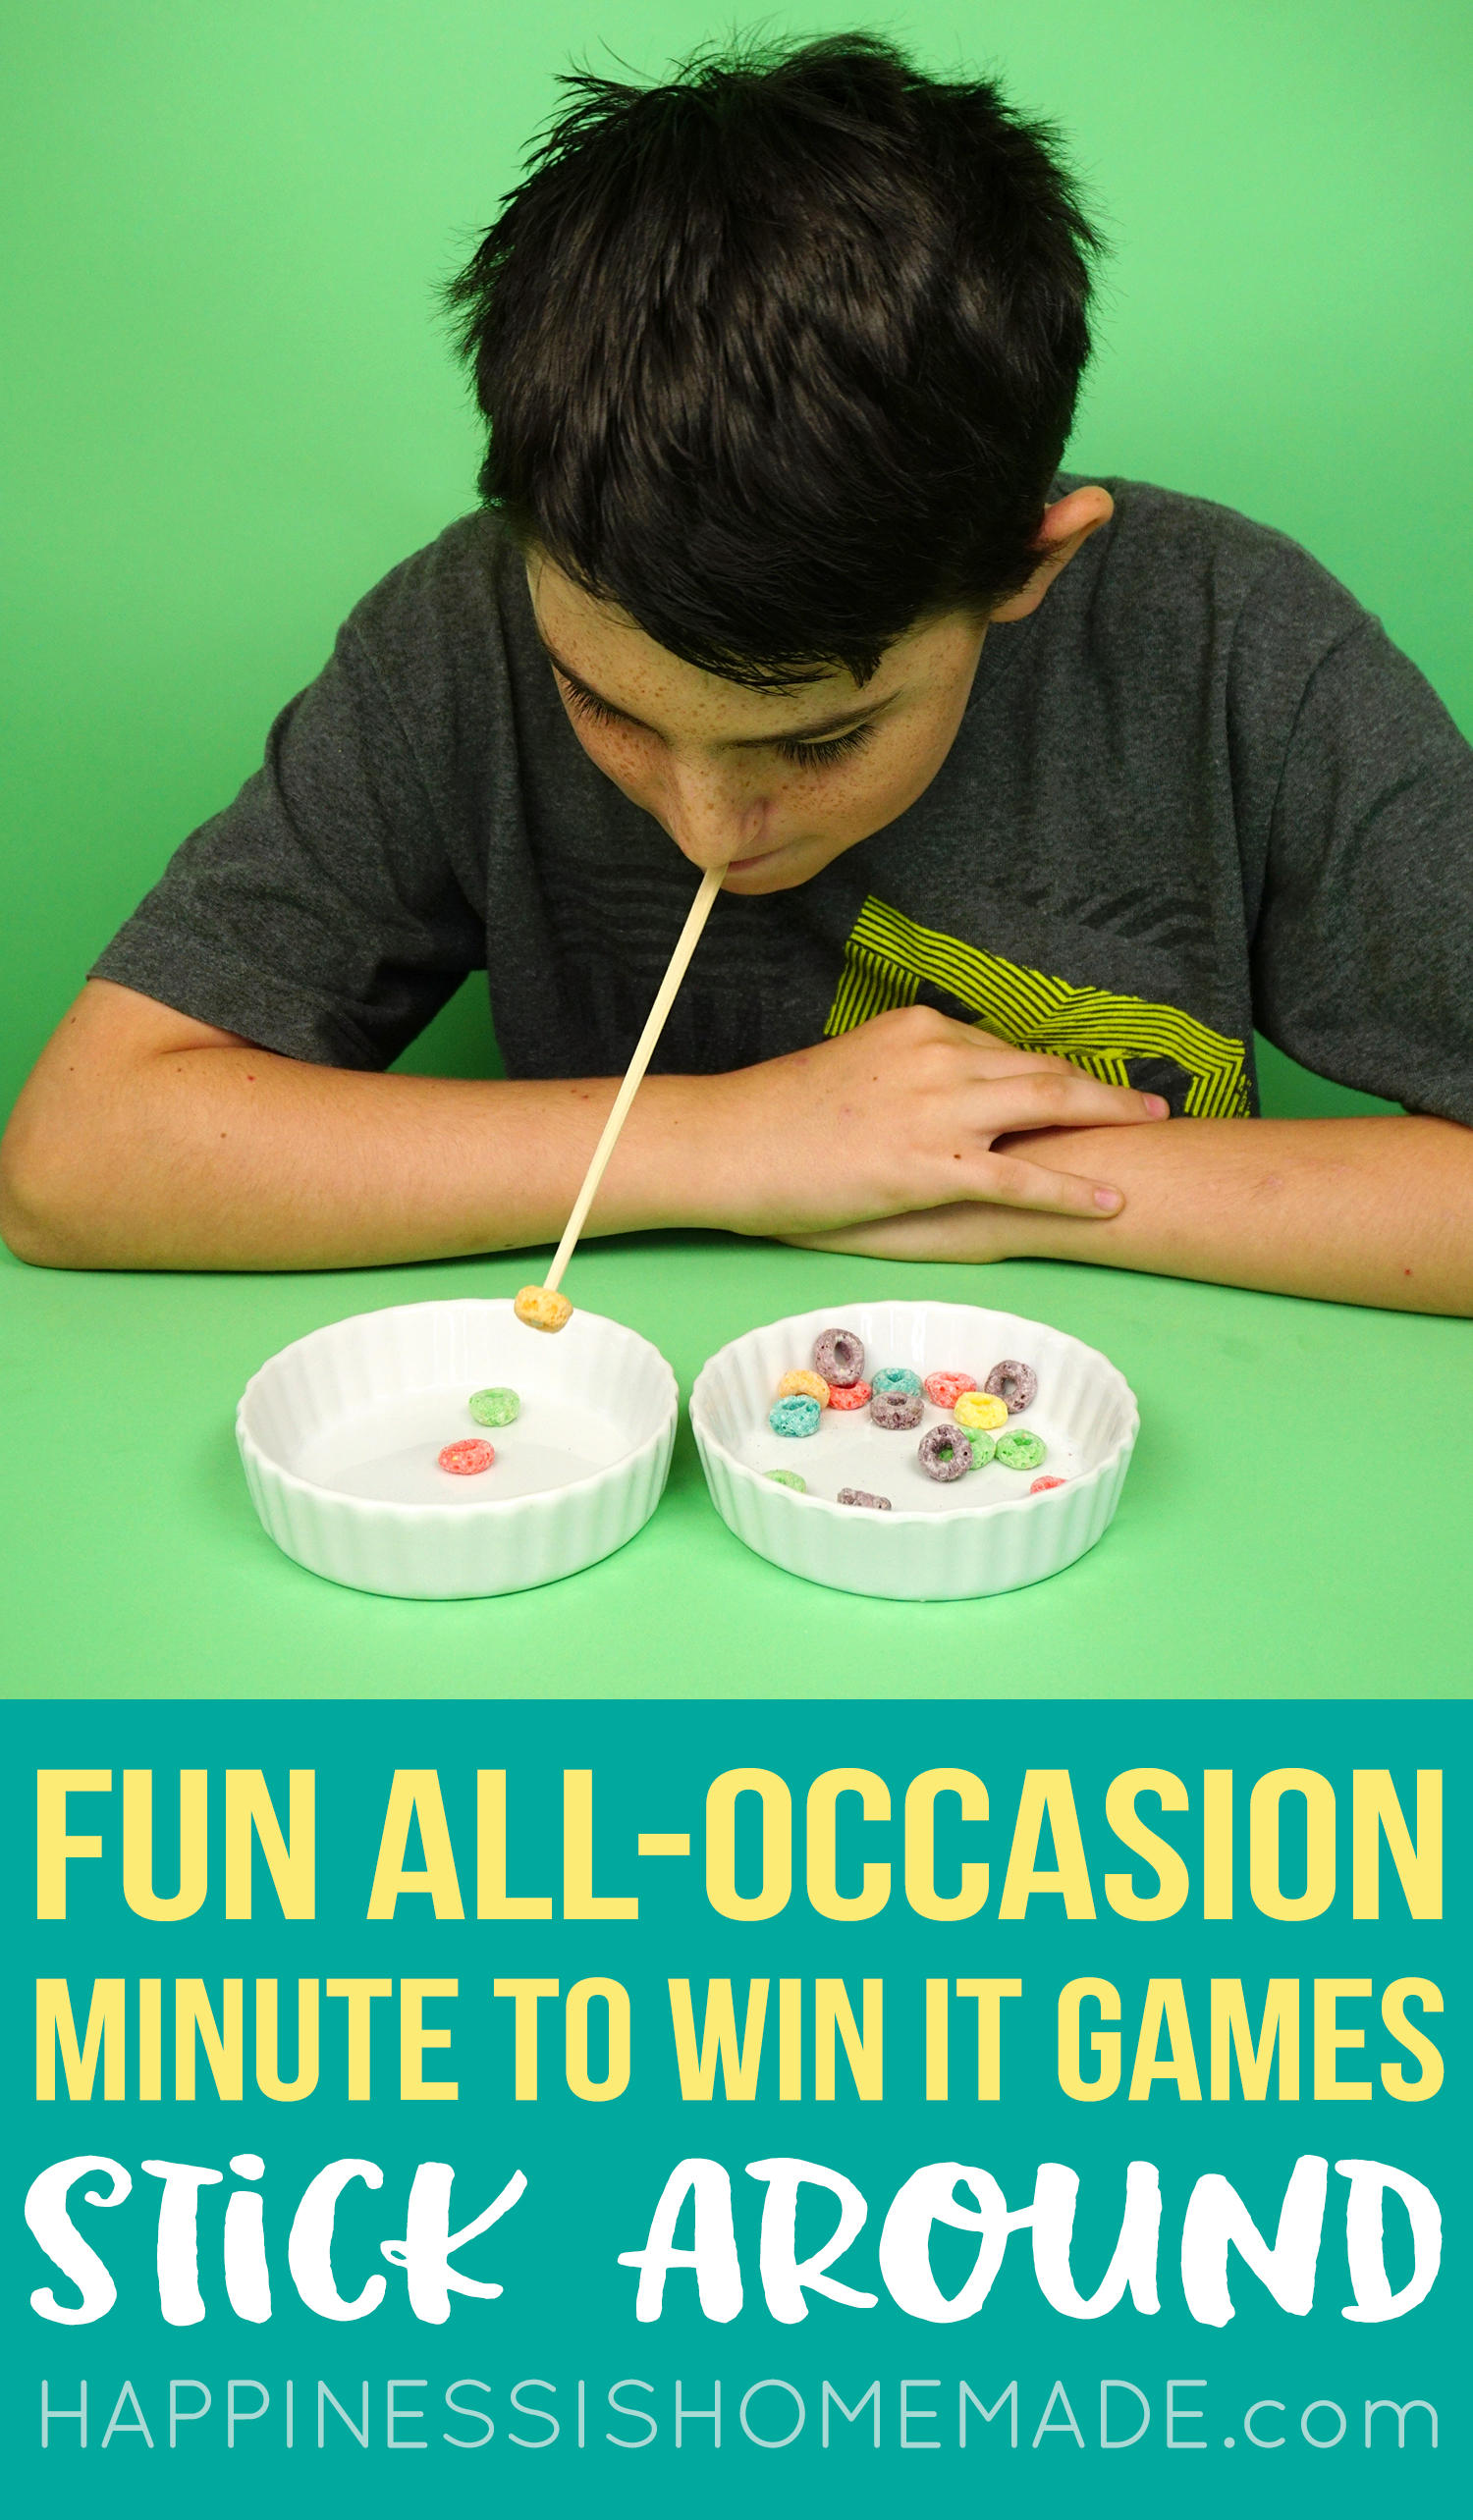 Minute to Win It Party Games - Stick Around - Chopsticks and Fruit Loops